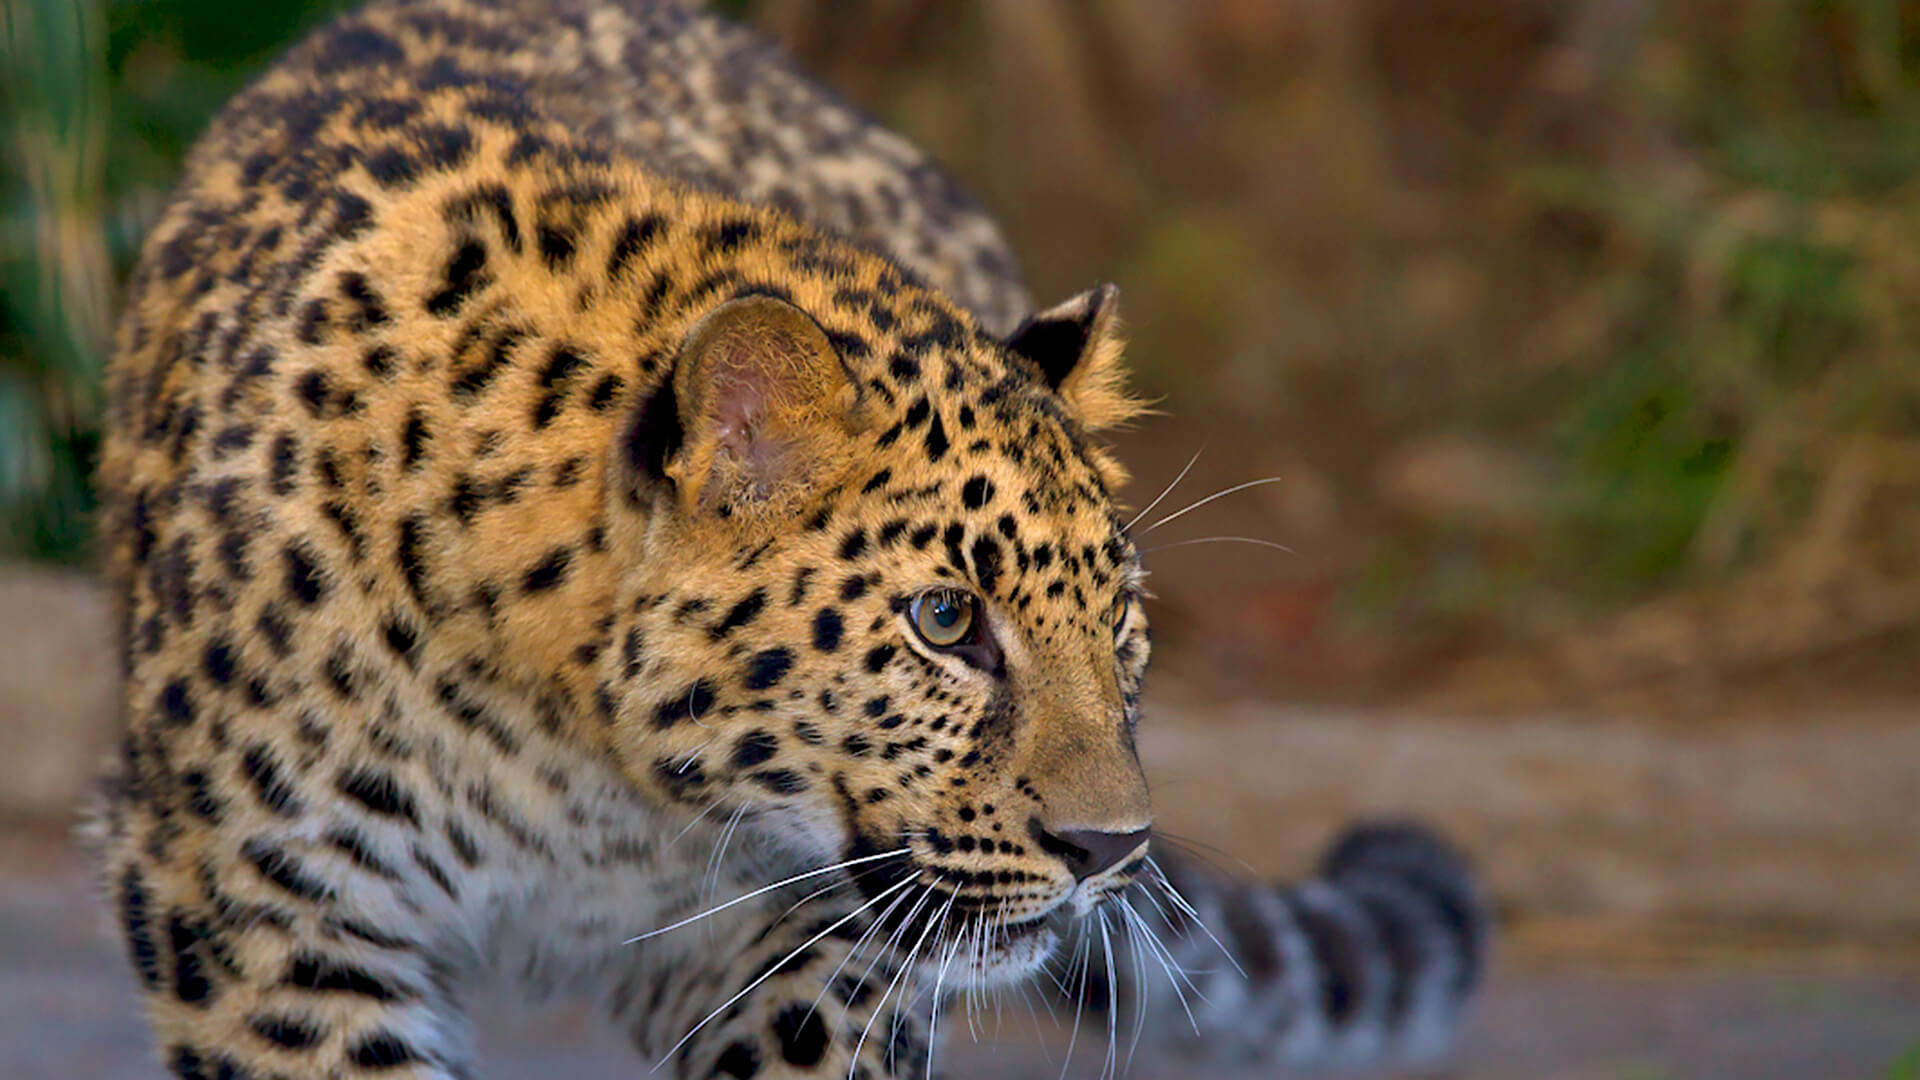 Leopard San Diego Zoo Animals Plants How To Build Nocturnal Whisker Amur Looking The Right With Blurred Jungle Background